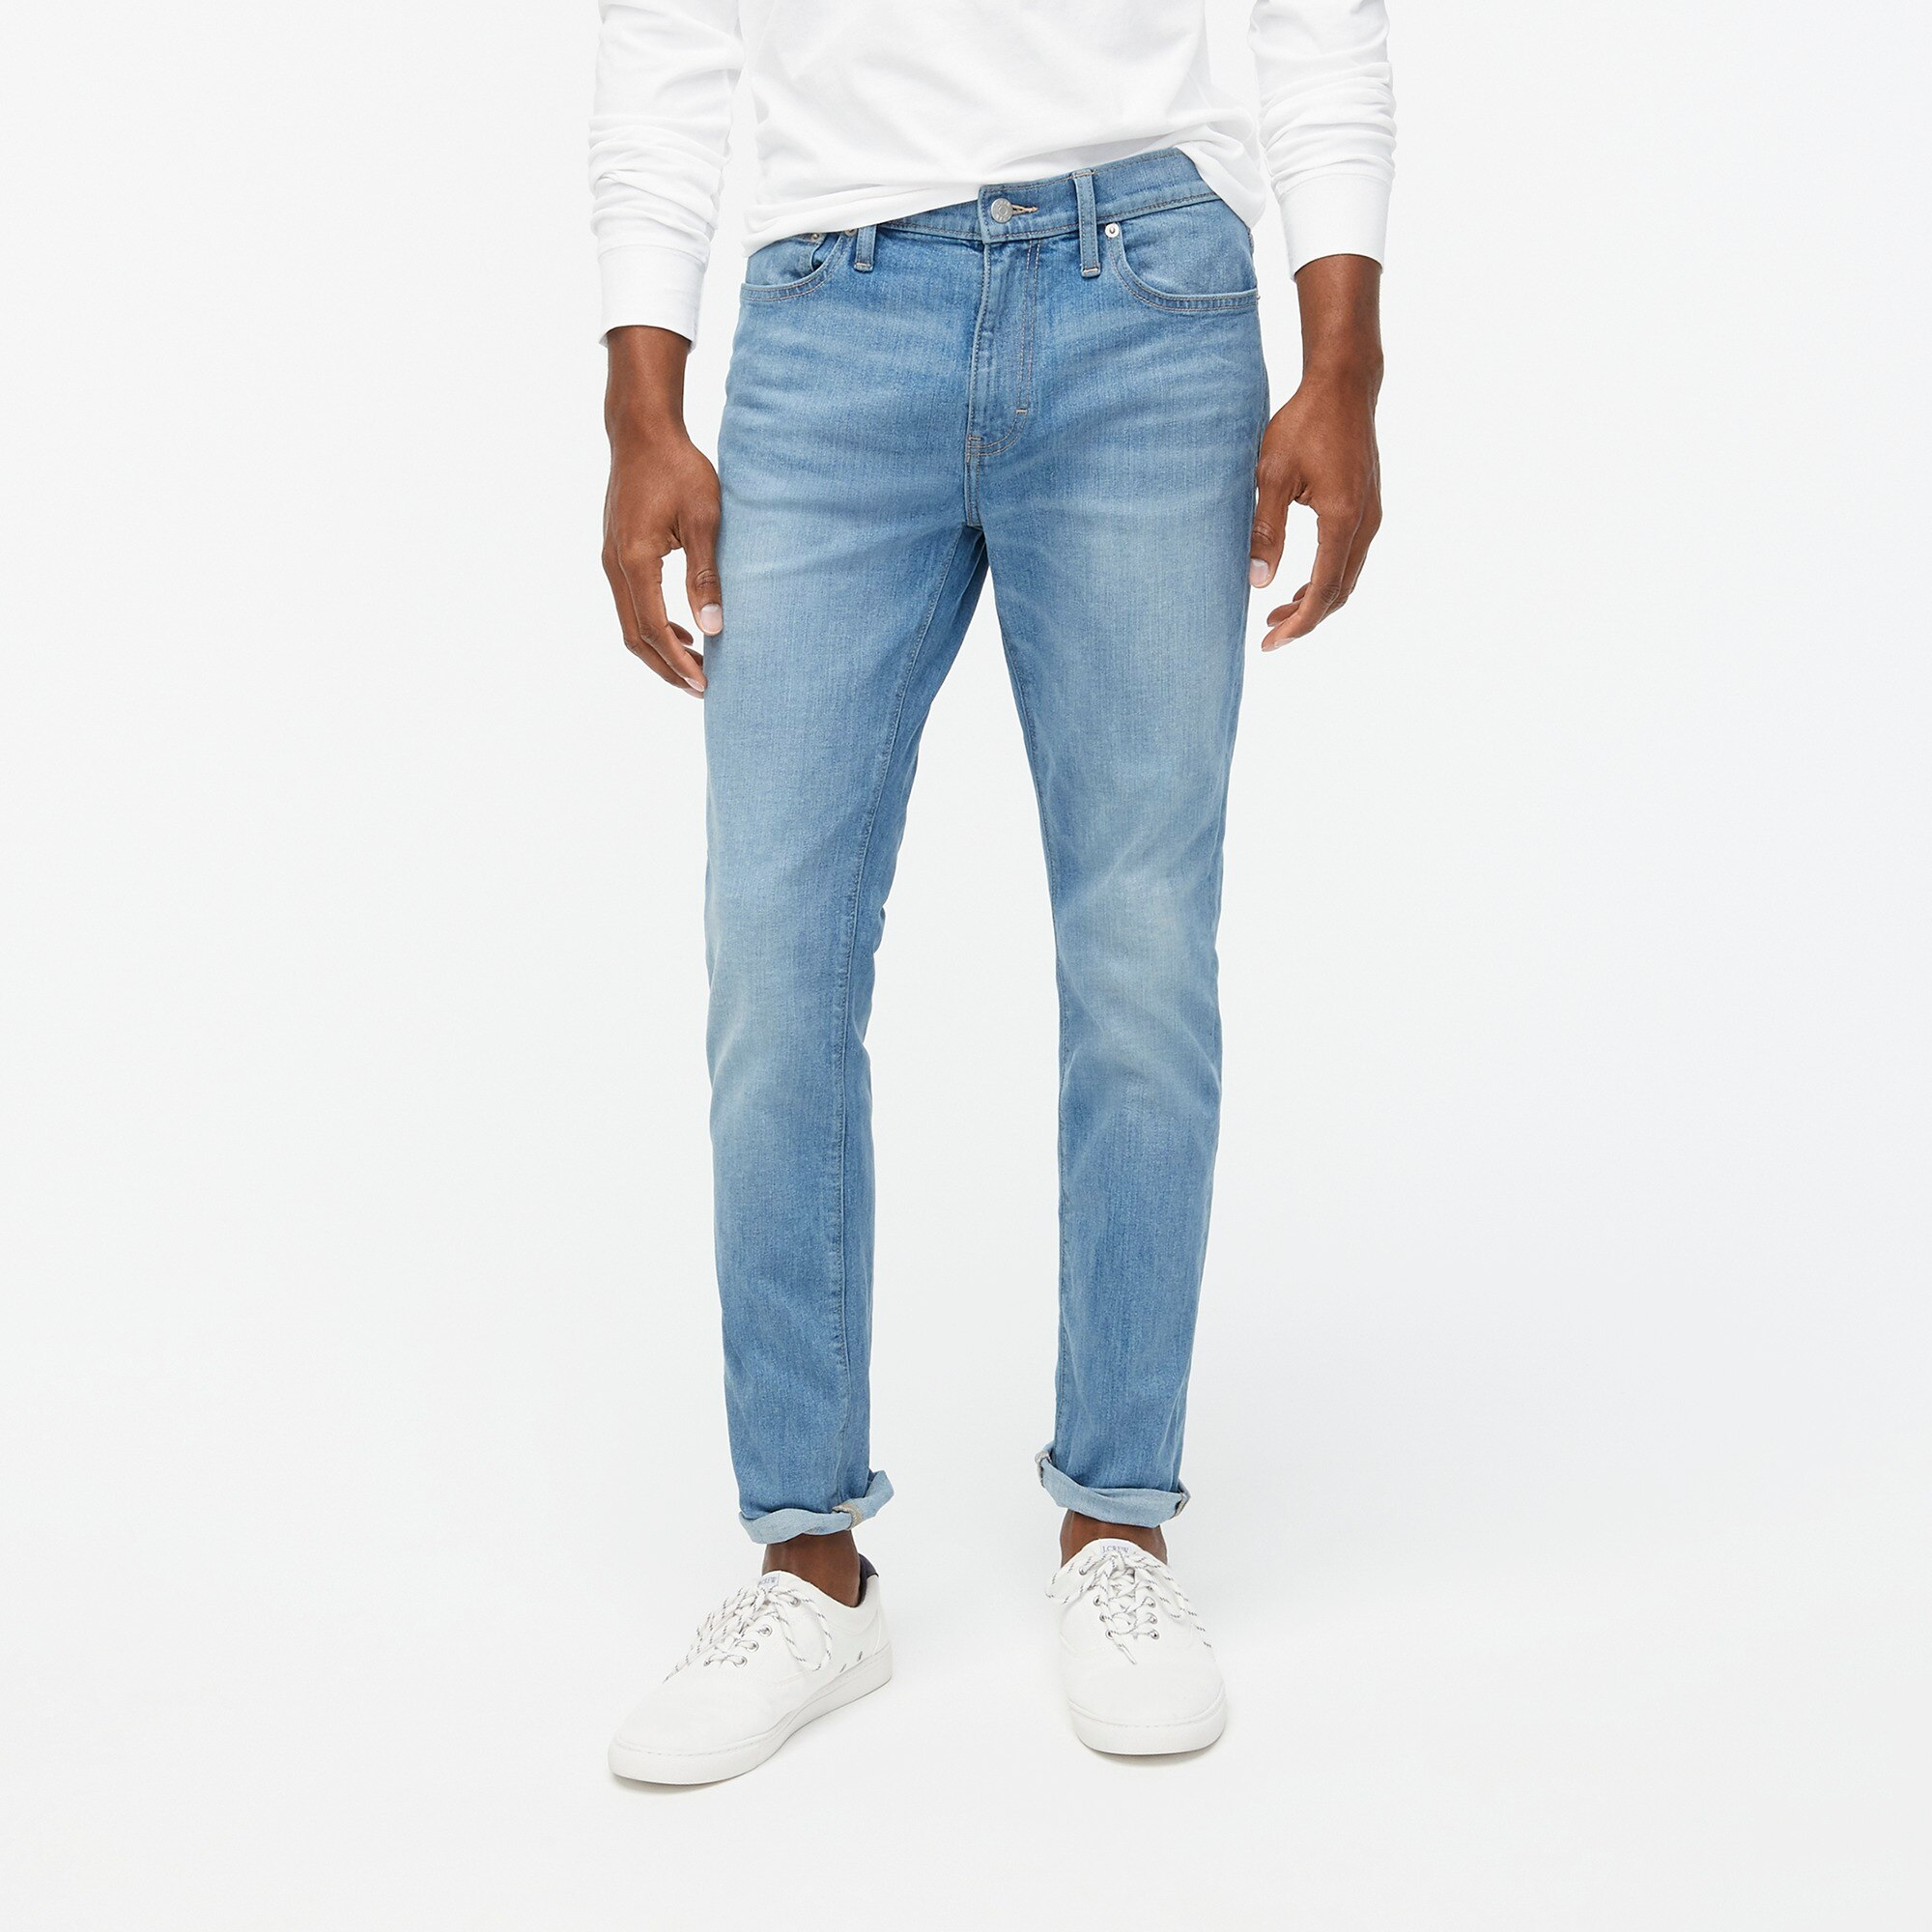 slim-fit flex jean in light wash : factorymen slim